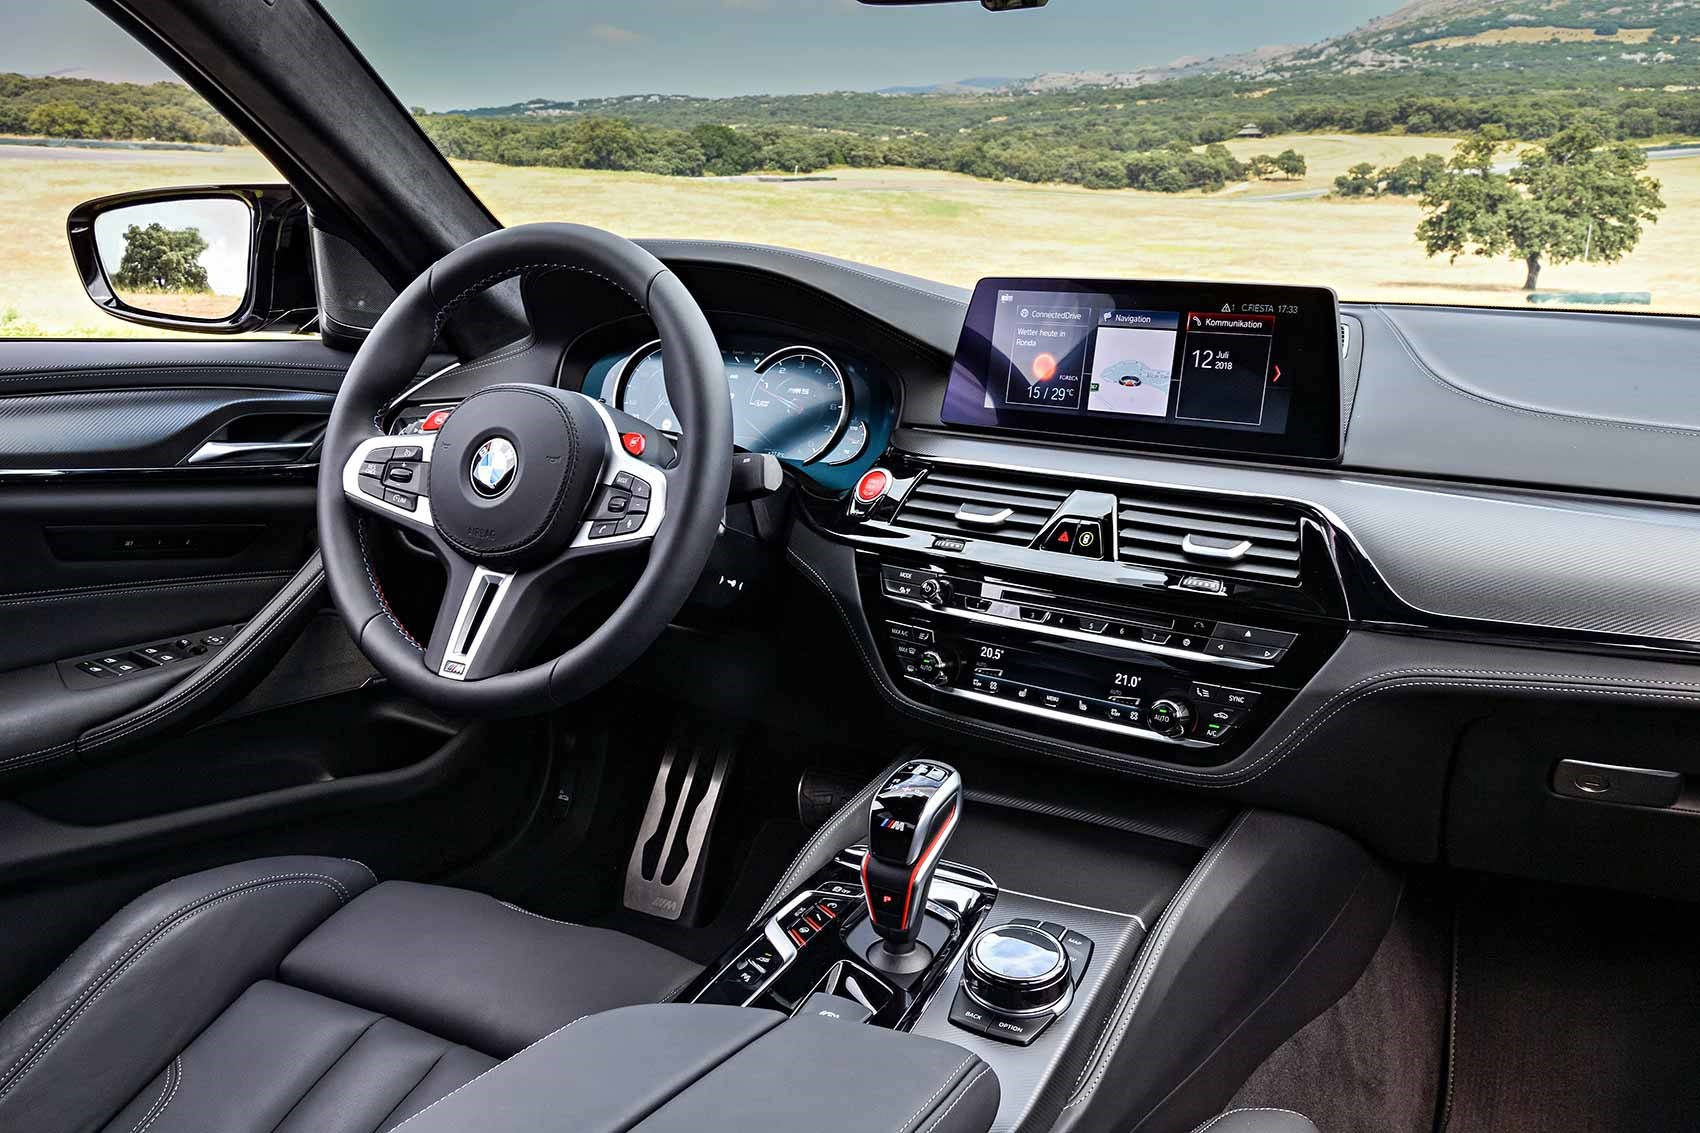 The new 2018 BMW M5 Competition interior